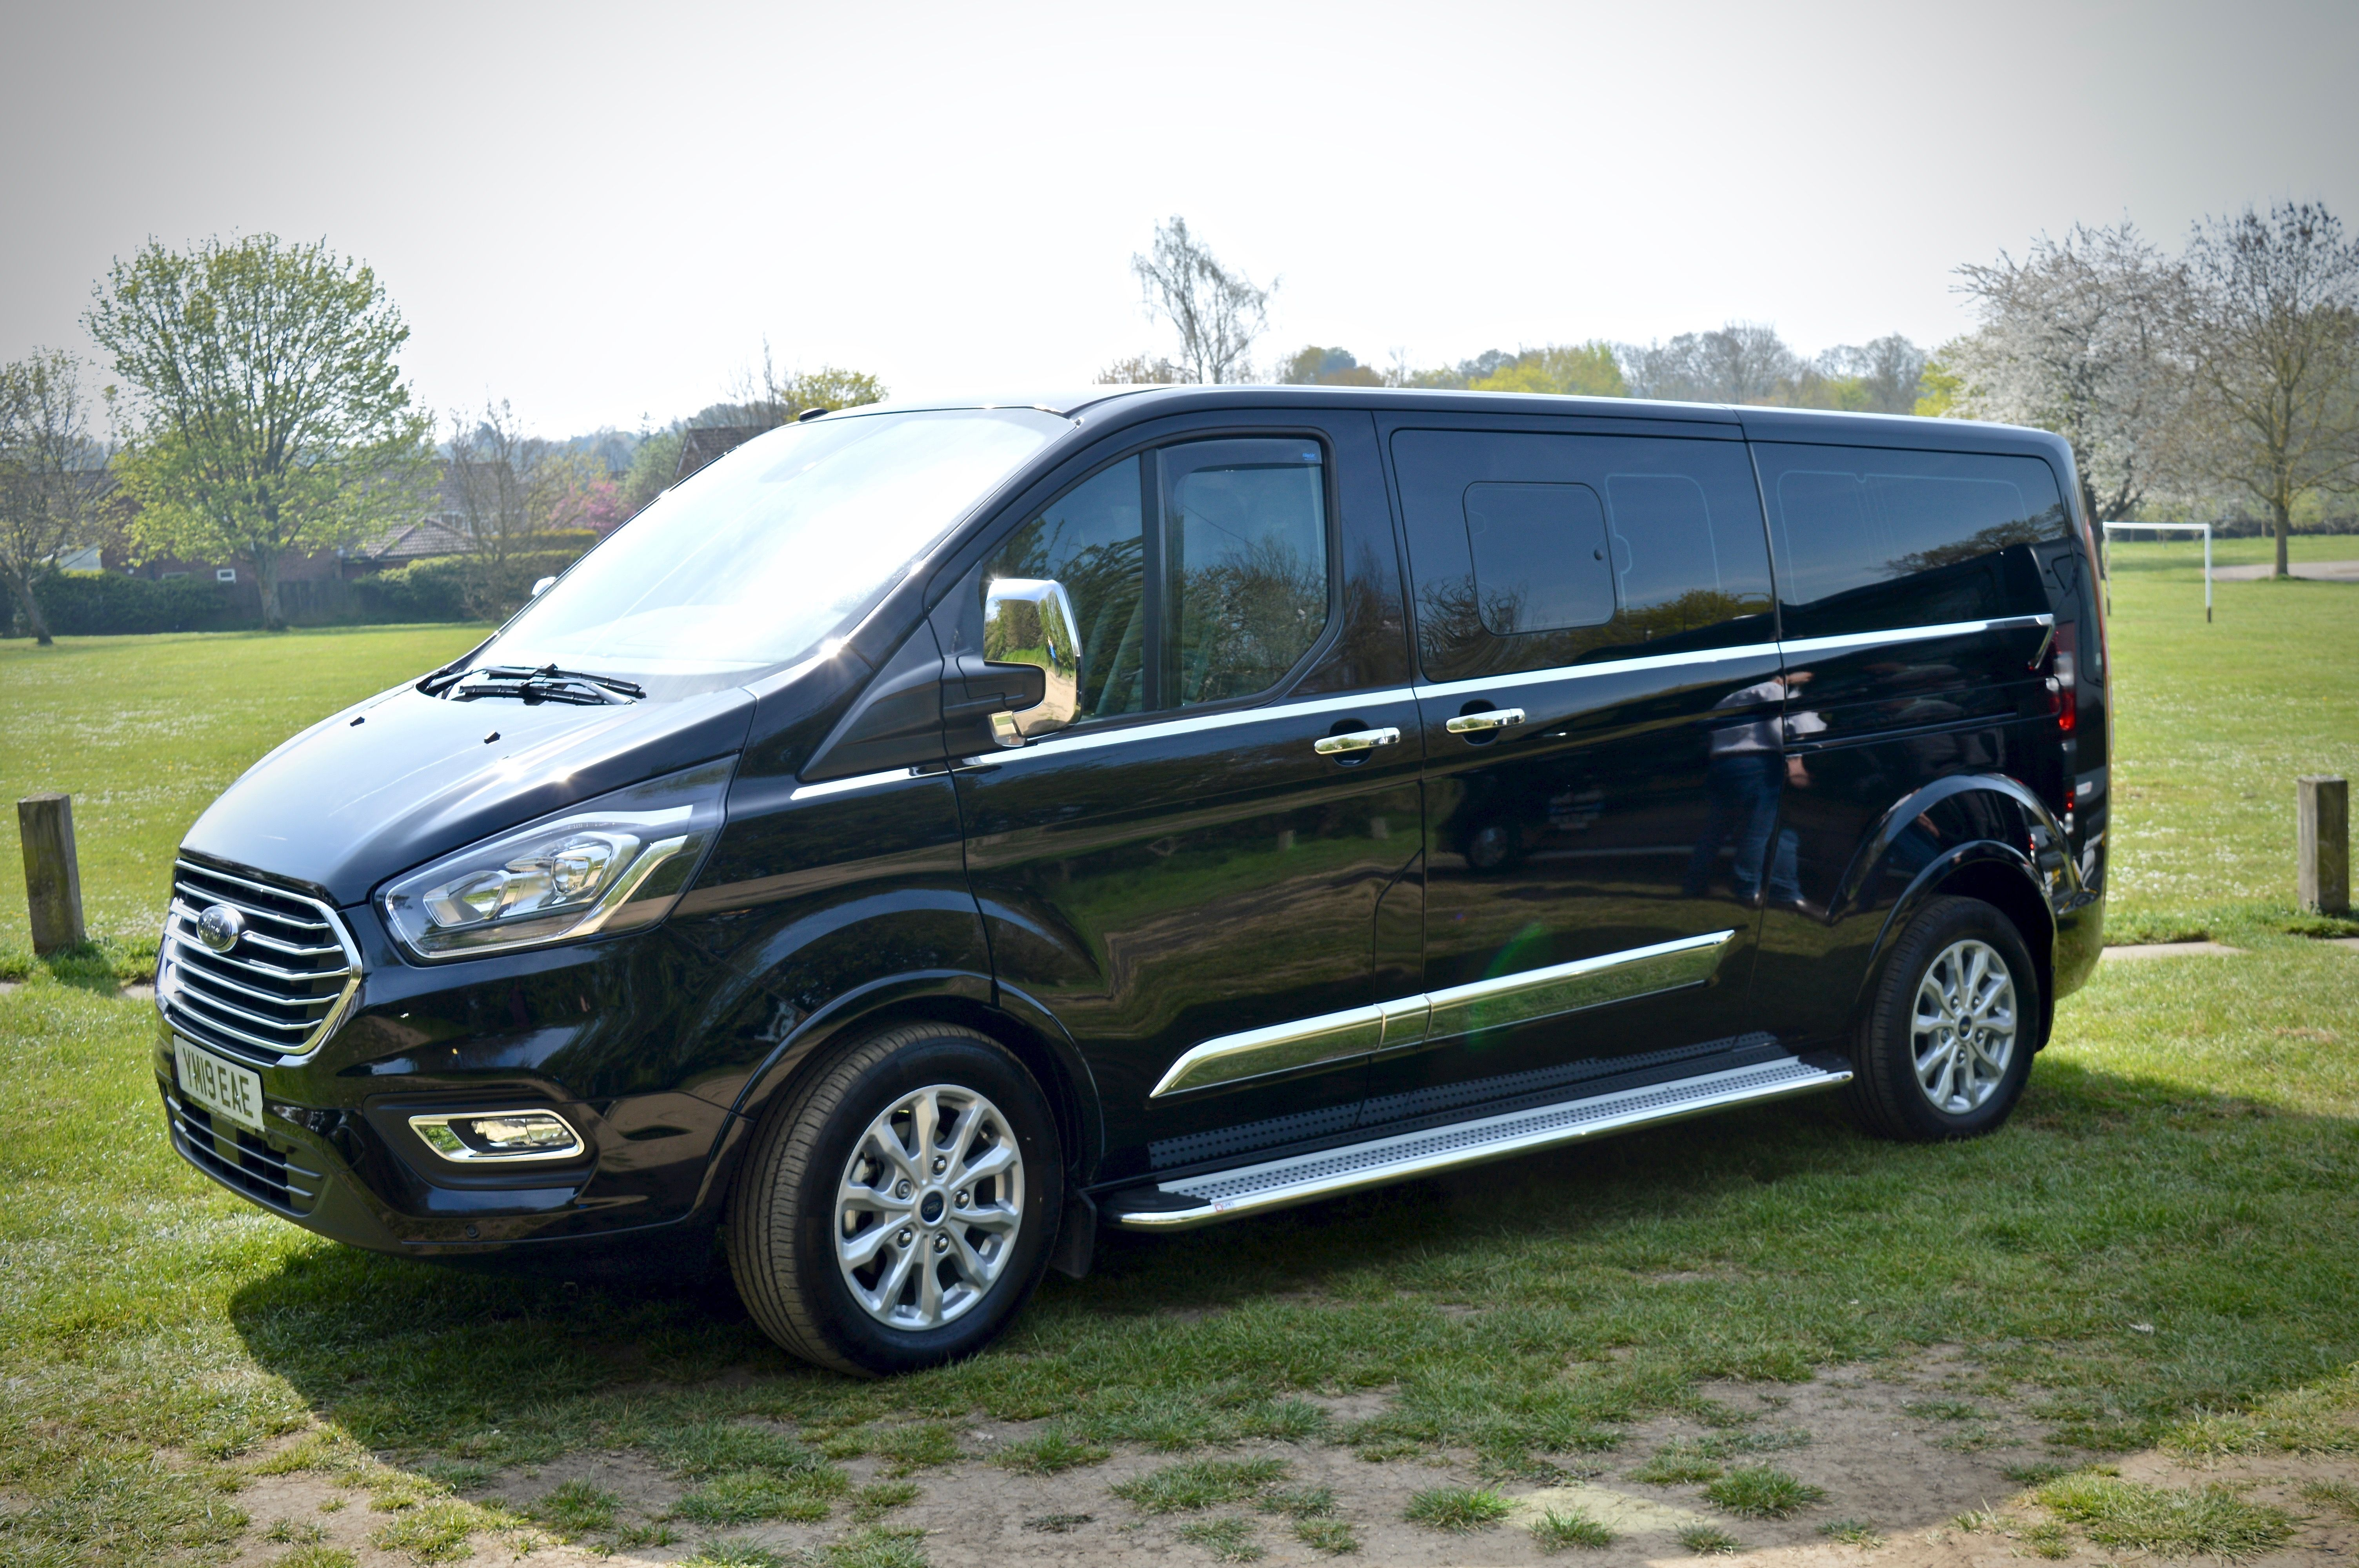 Outside view of the ford custom royale 8 seater private hire taxi